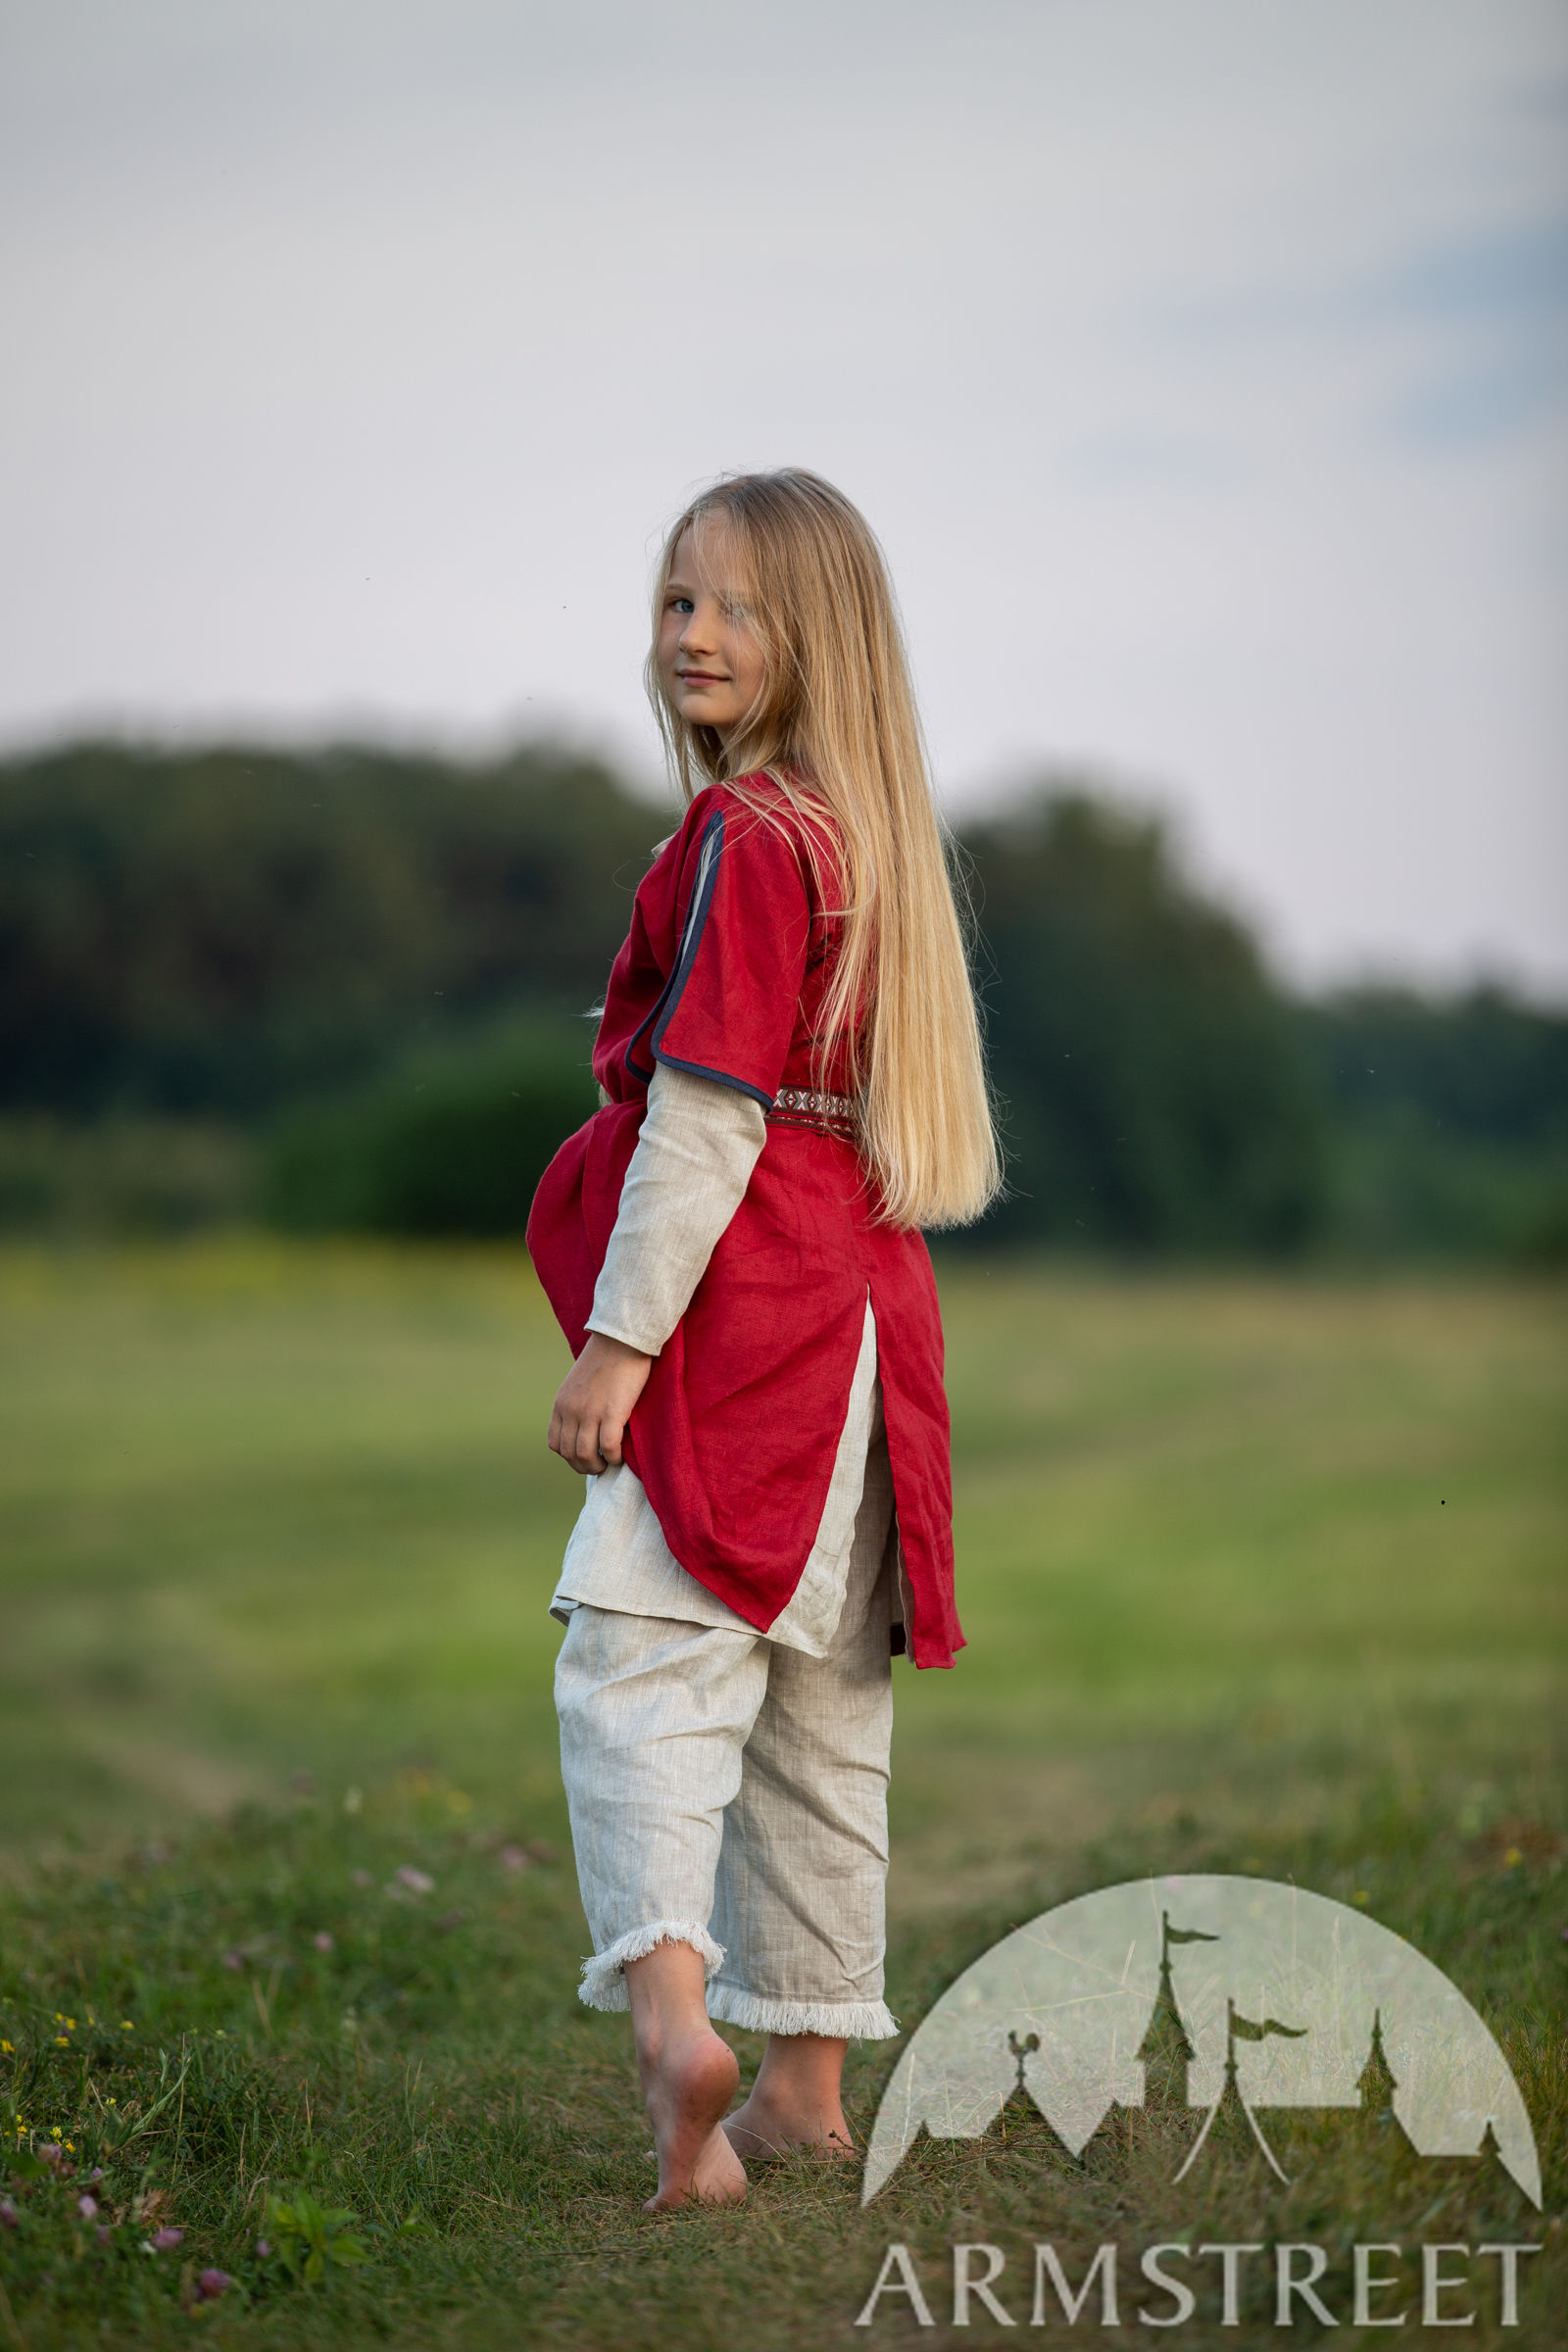 https://armstreet.com/catalogue/full/childrens-linen-tunic-with-contrasting-border-first-adventure-13.jpg